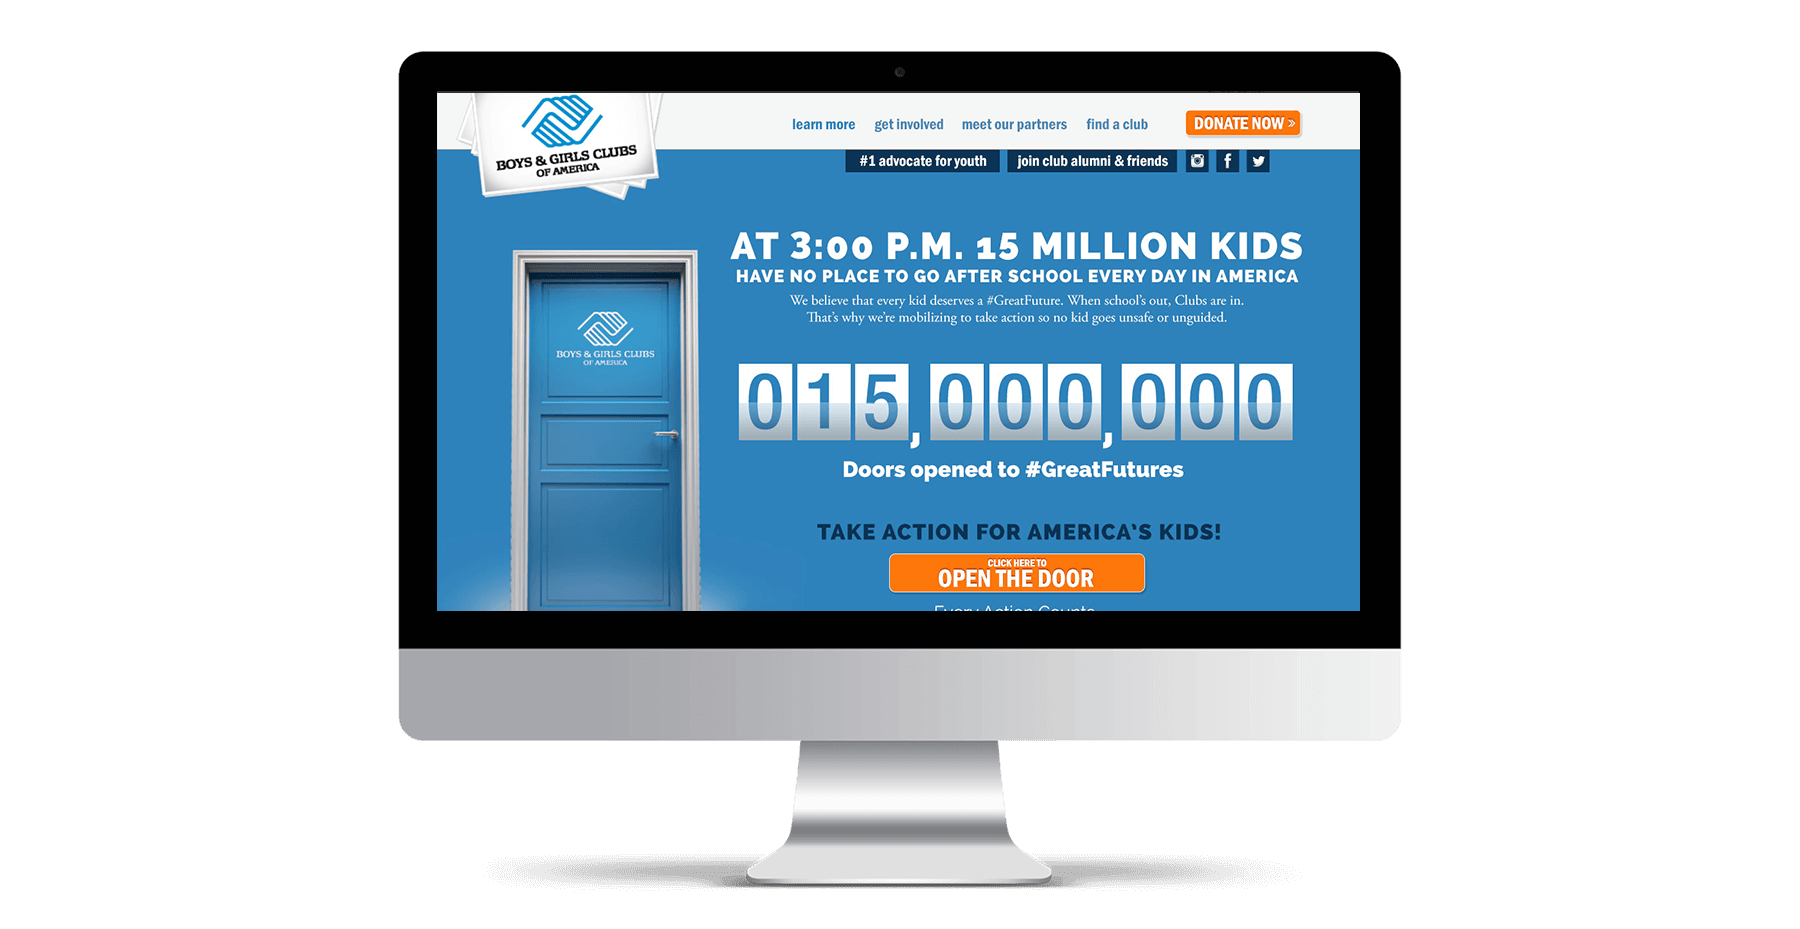 Website Mockup for Boys and Girls Club